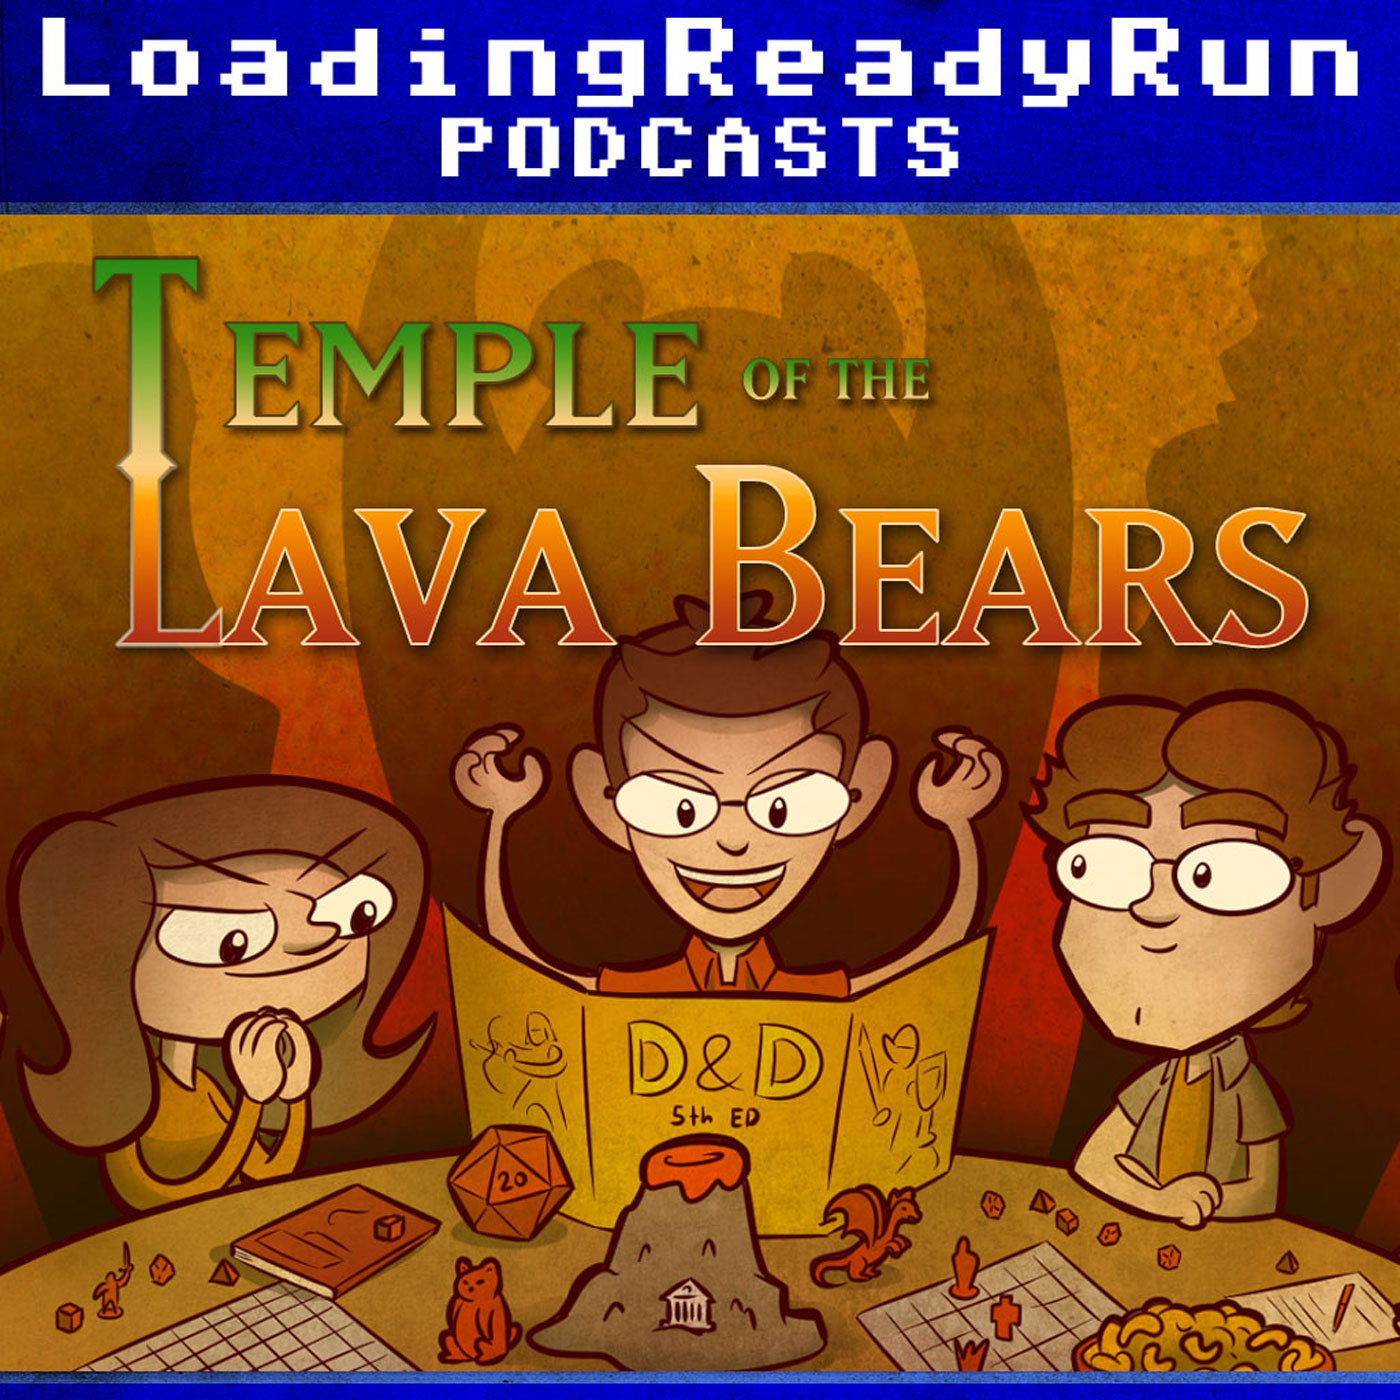 Temple of the Lava Bears - LoadingReadyRun